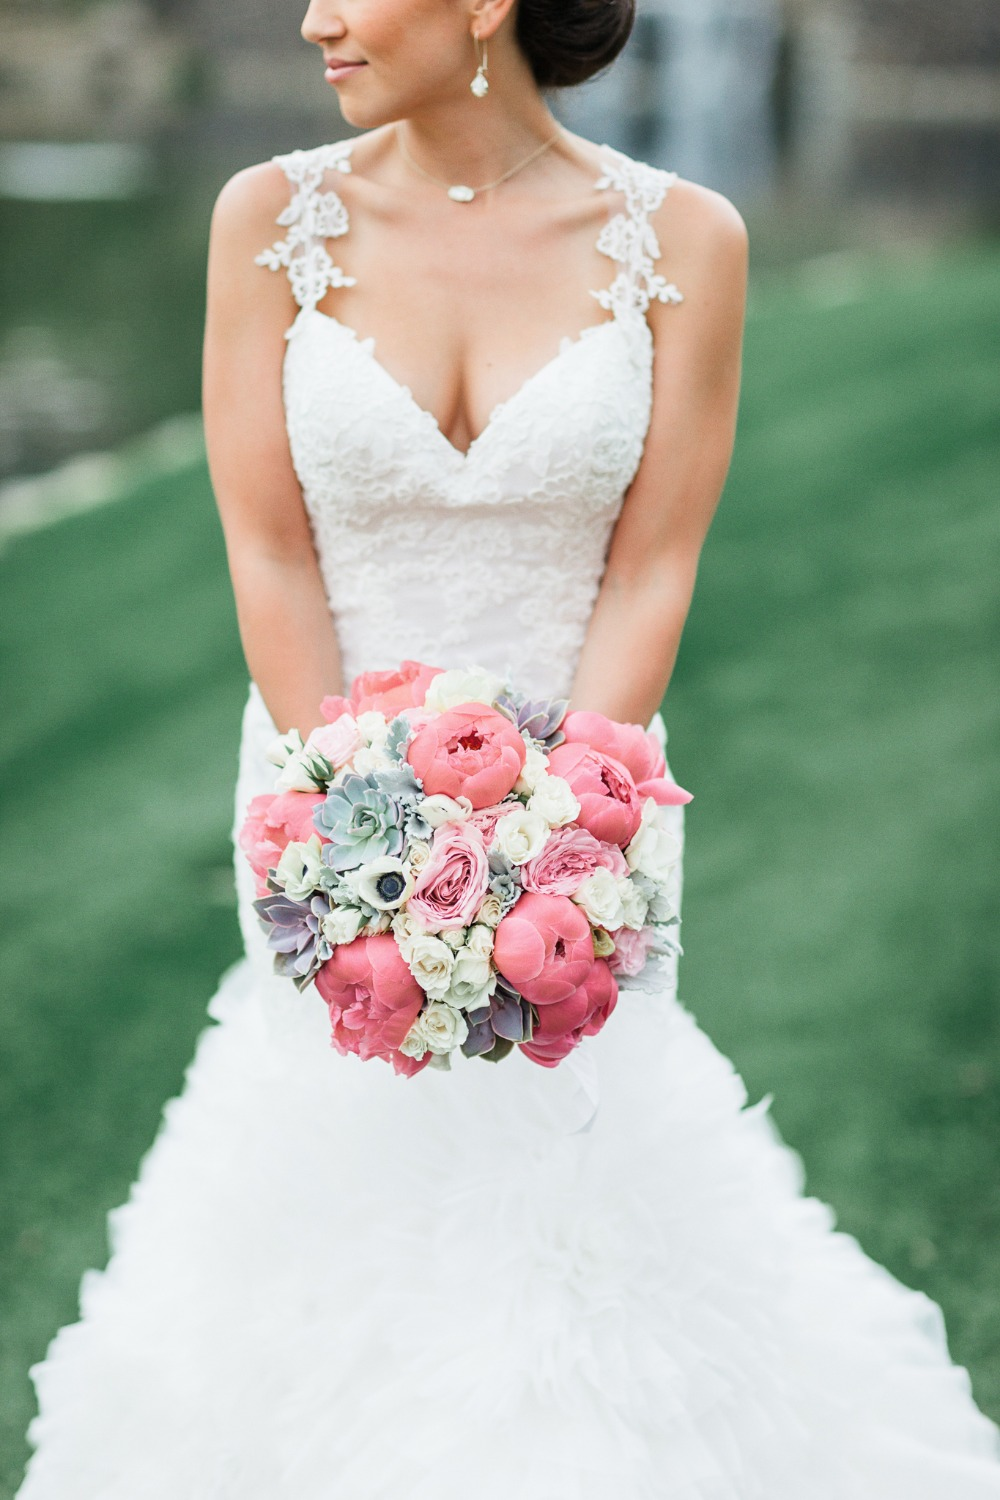 Pink creme and grey wedding bouquet